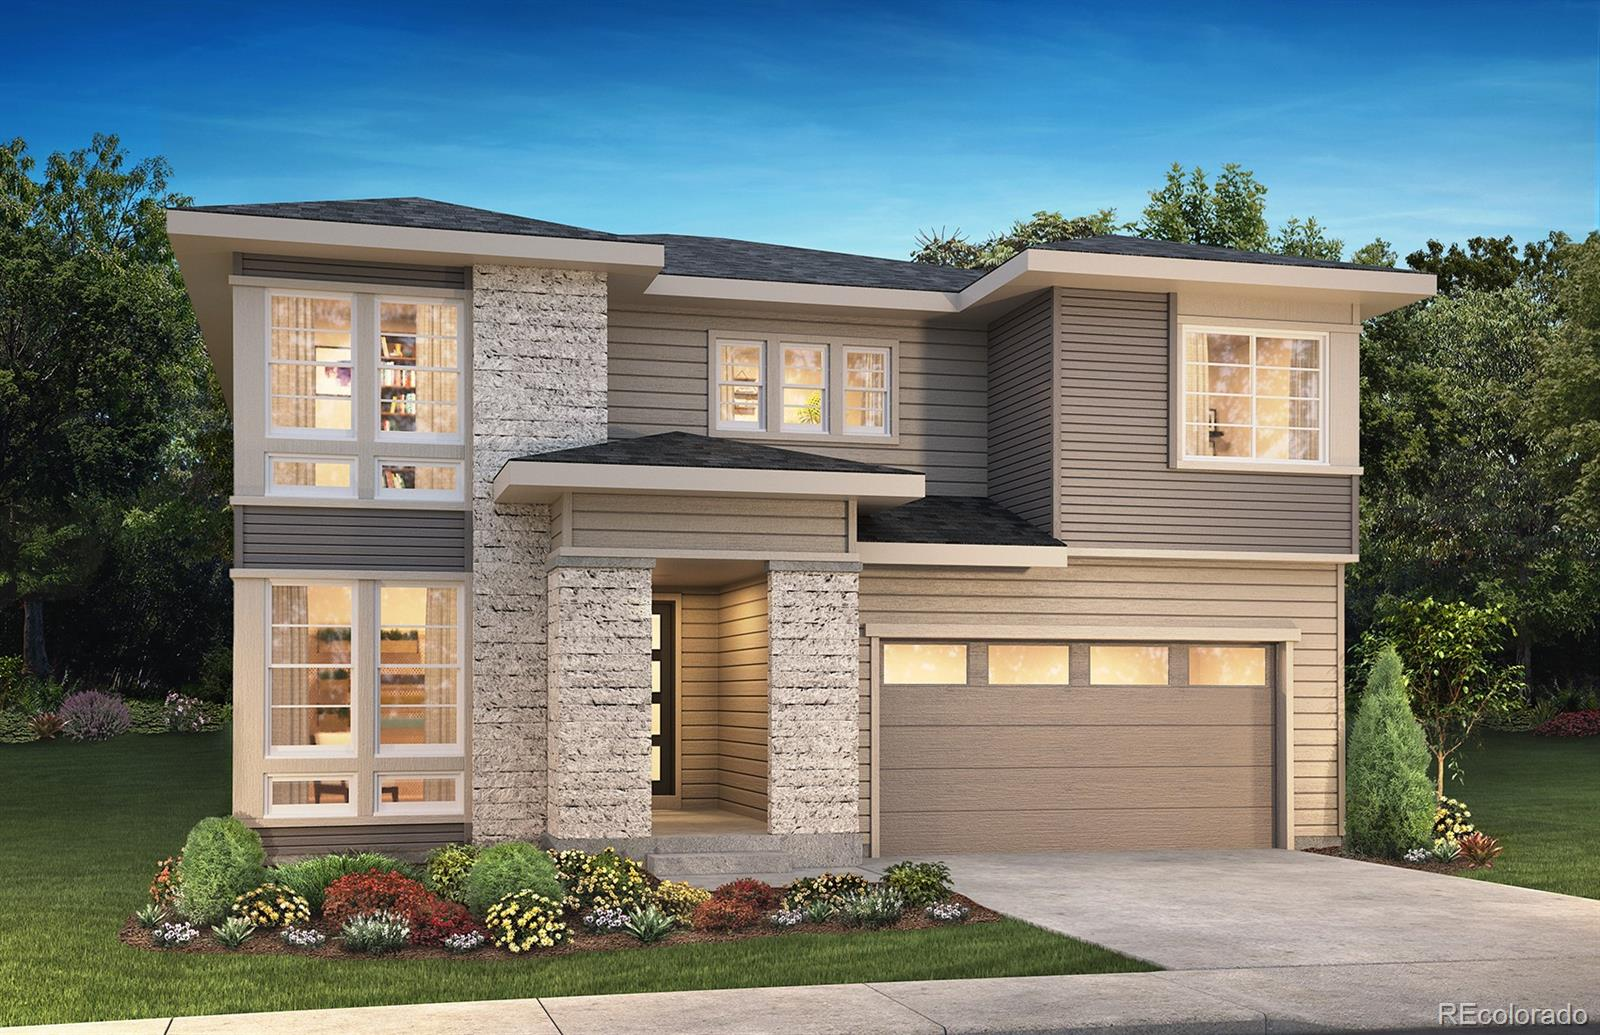 """Available September 2020! This gorgeous Emerson 2 story in The Canyons features 4 beds, 3.5 baths, loft, upper laundry,great room, dining area, kitchen, 3 car garage (2 + 1 tandem), and unfinished walk-out basement. Beautiful designfinishes and upgrades include 36"""" GE Cafe™ stainless steel gas appliances; Aristokraft® Lillian Purestyle White andLanden Maple Flagstone cabinetry; Fireplace with full height stacked tile and mantel at great room; Kitchen with largeisland and walk-in pantry; Covered outdoor living area with optional gas line; designer framed mirrors in bathrooms; tile in all wetareas and more. This beautiful home thoughtfully combines elegance and luxury. ENERGY STAR Certified Home.  Don't miss your opportunity. Welcome Home!"""